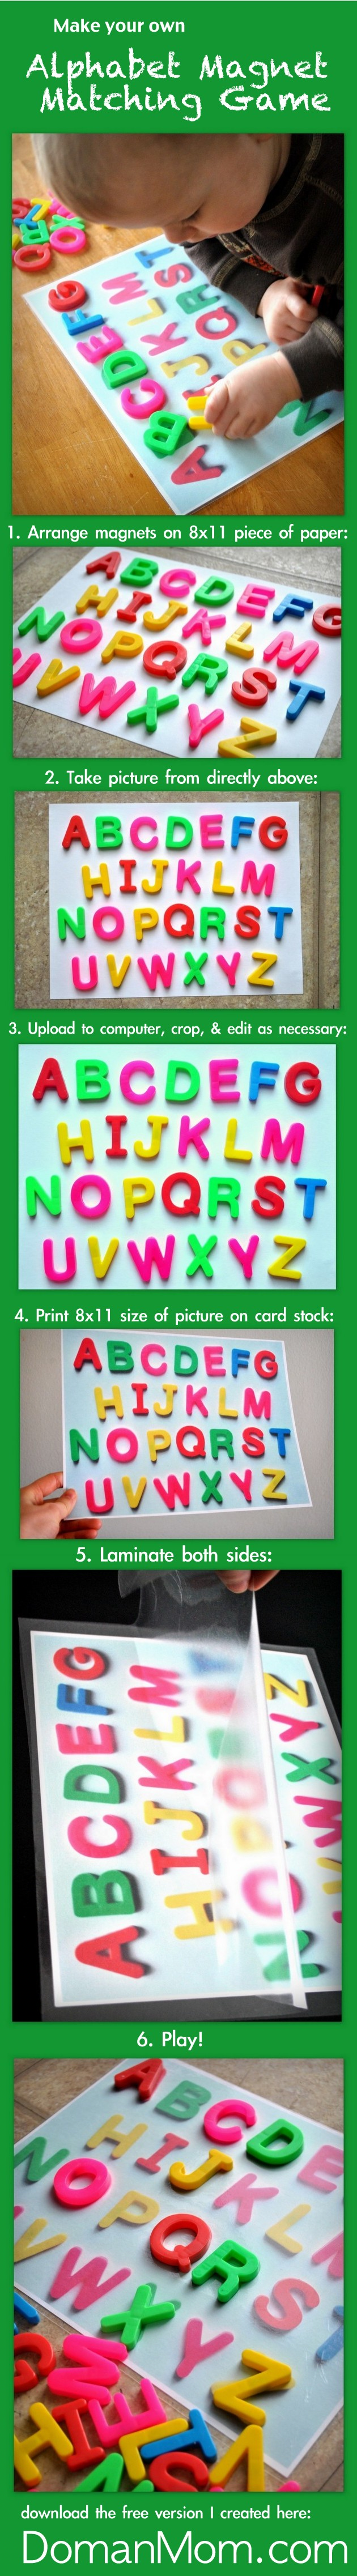 Make Your Own Alphabet Matching Game